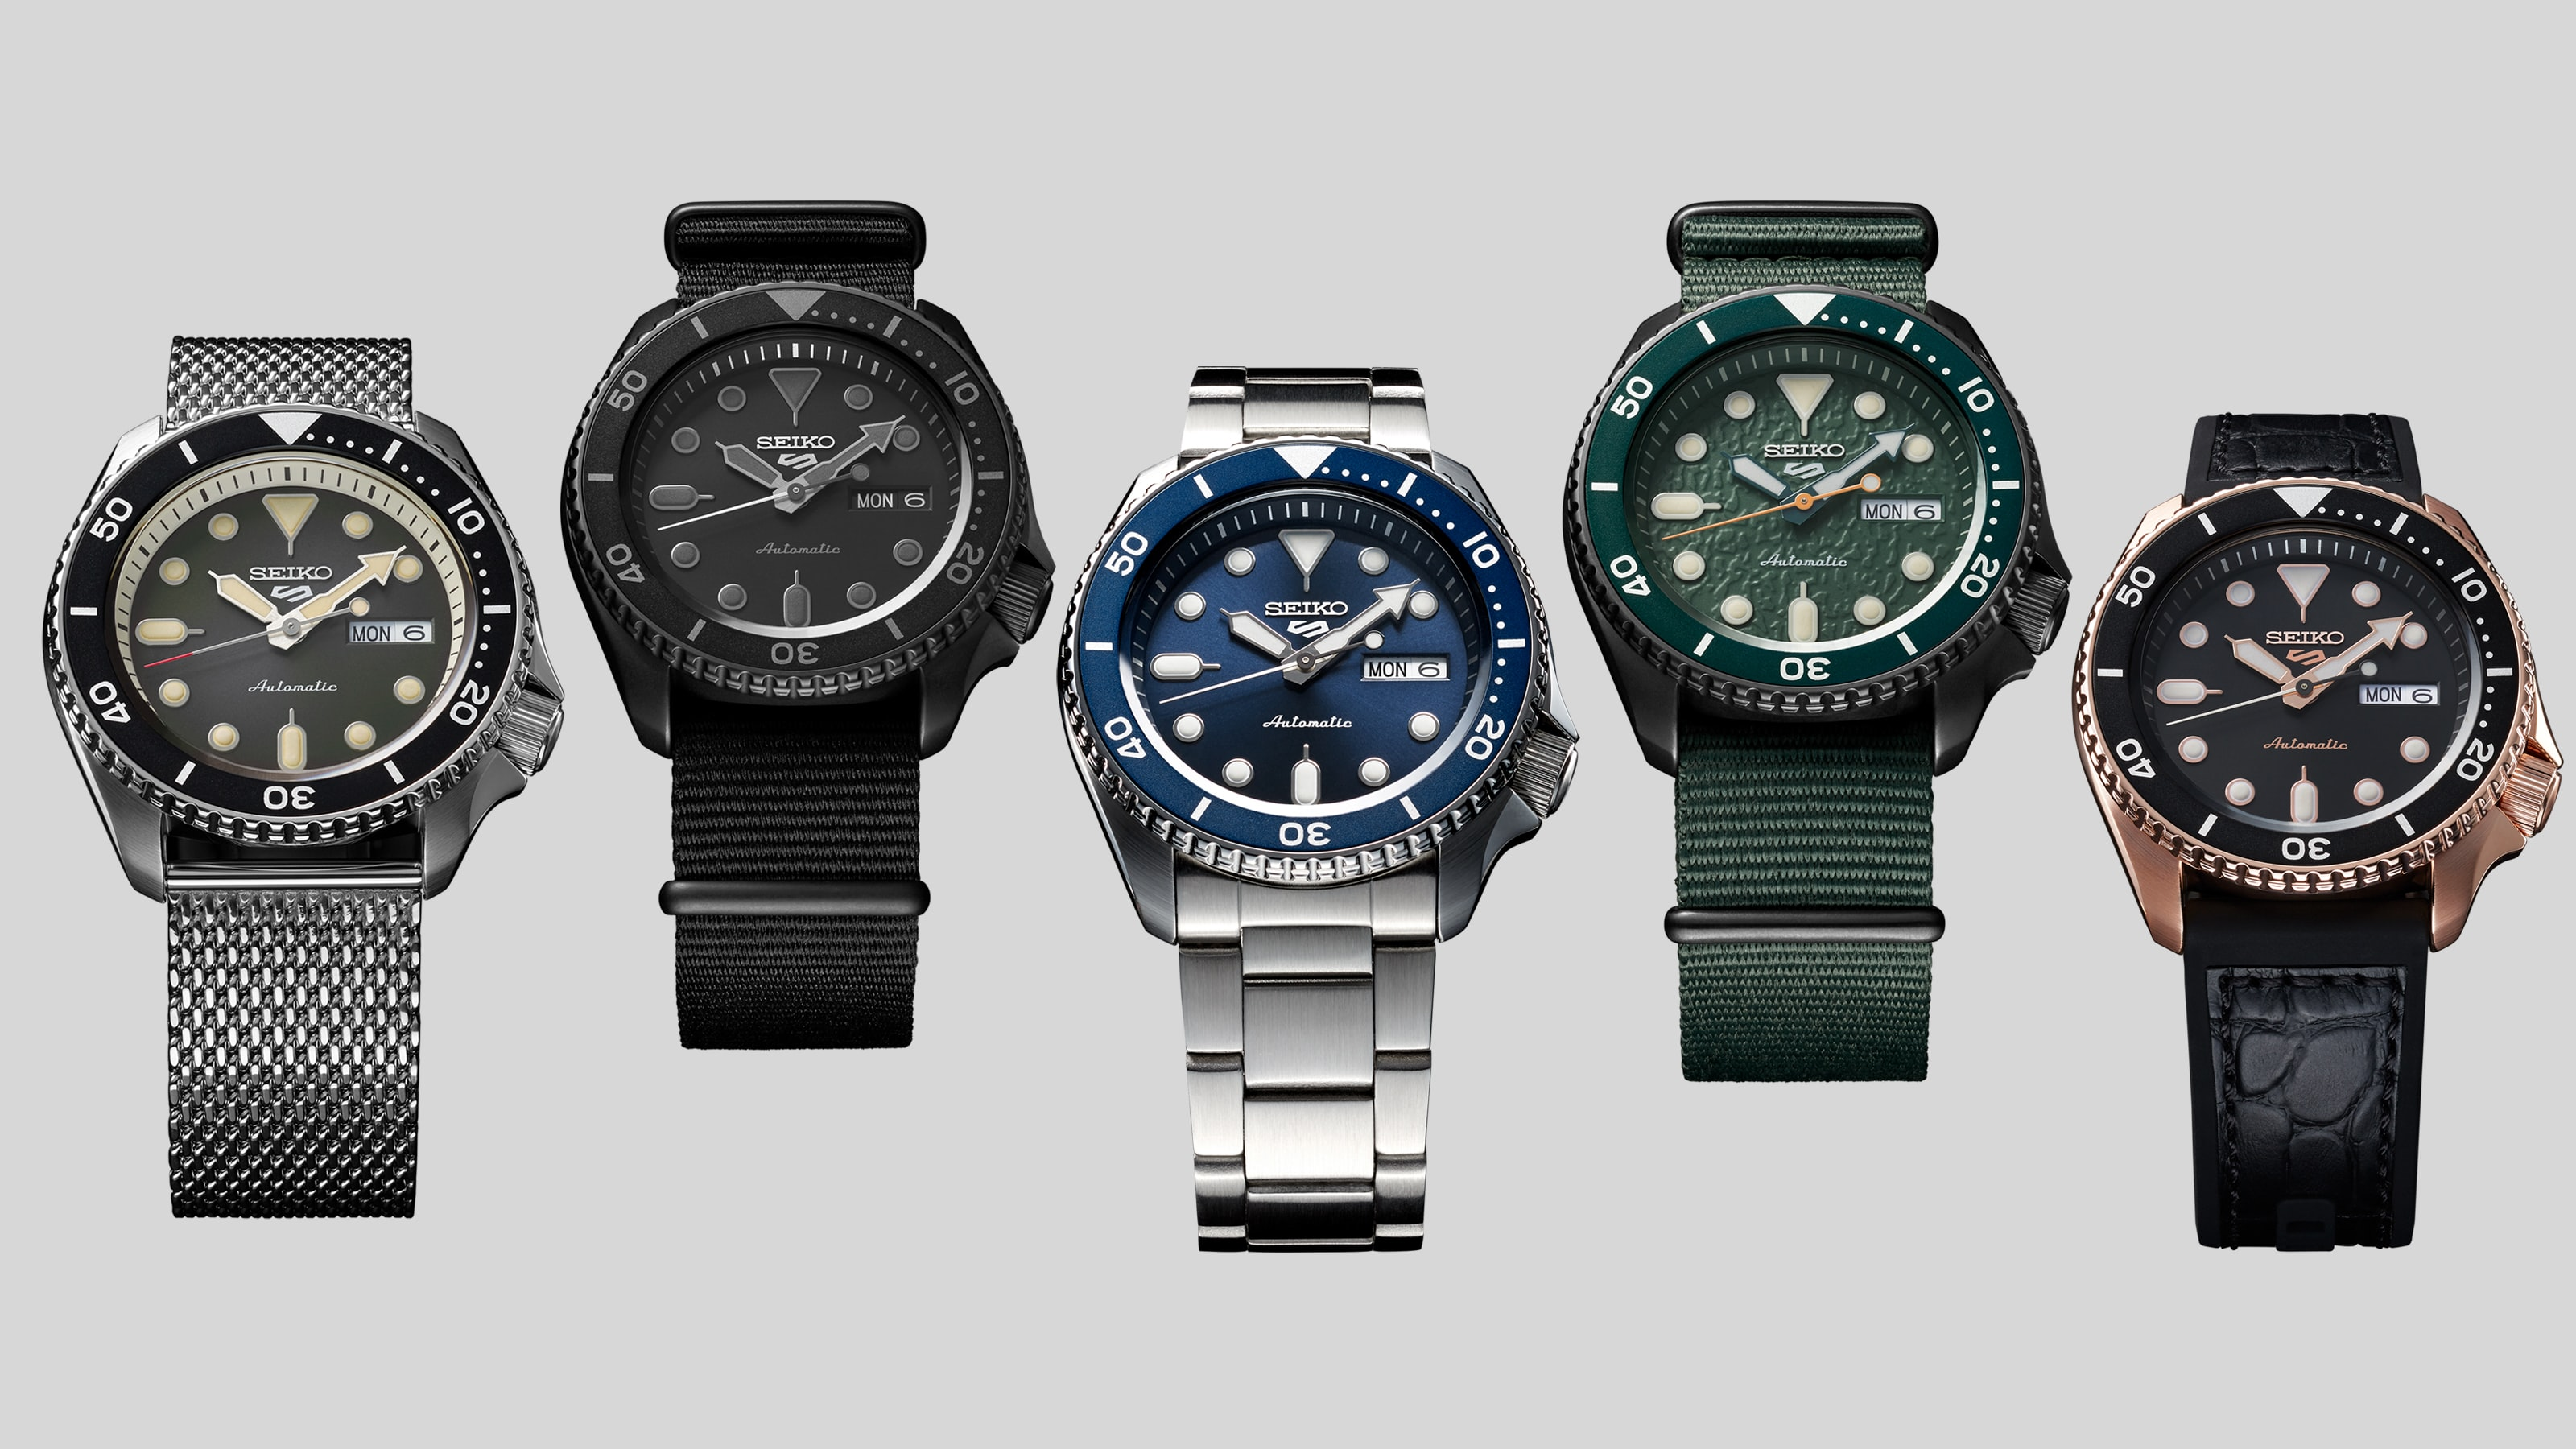 The Bay New Seiko 5 Sports Collection, 27 Watches (SKX Replacement) $239.06 - $286.87